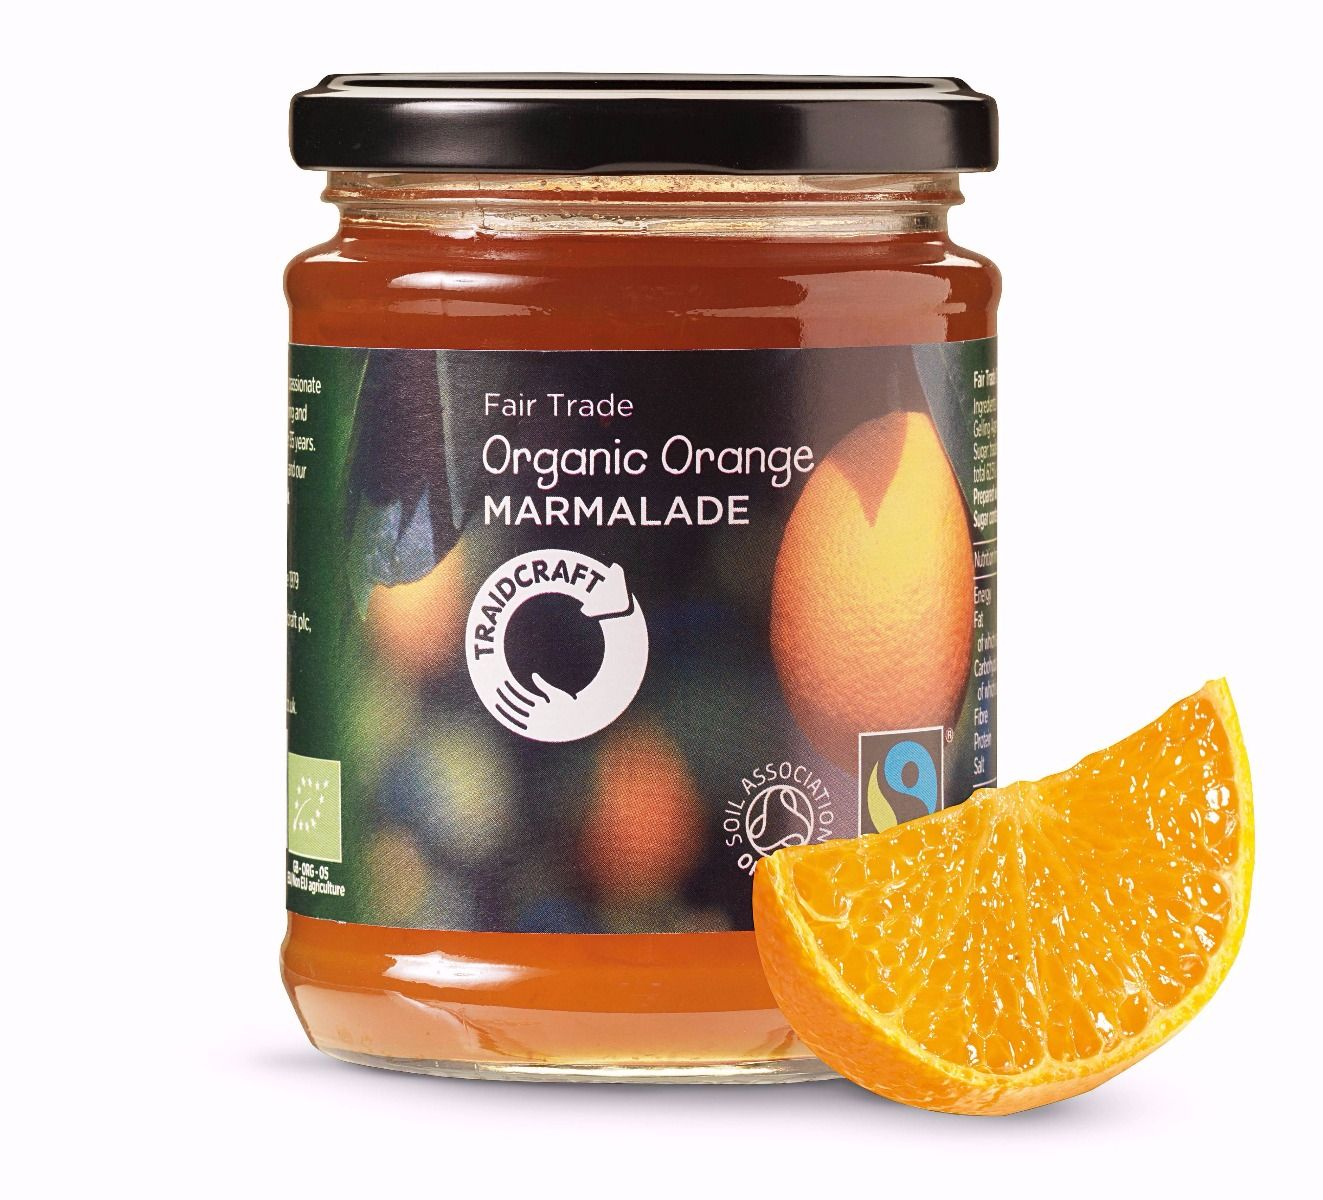 340g glass jar. The attractive label carries a design based on oranges at various stages of ripeness plus the fairtrademark and the mark of the Soil Association